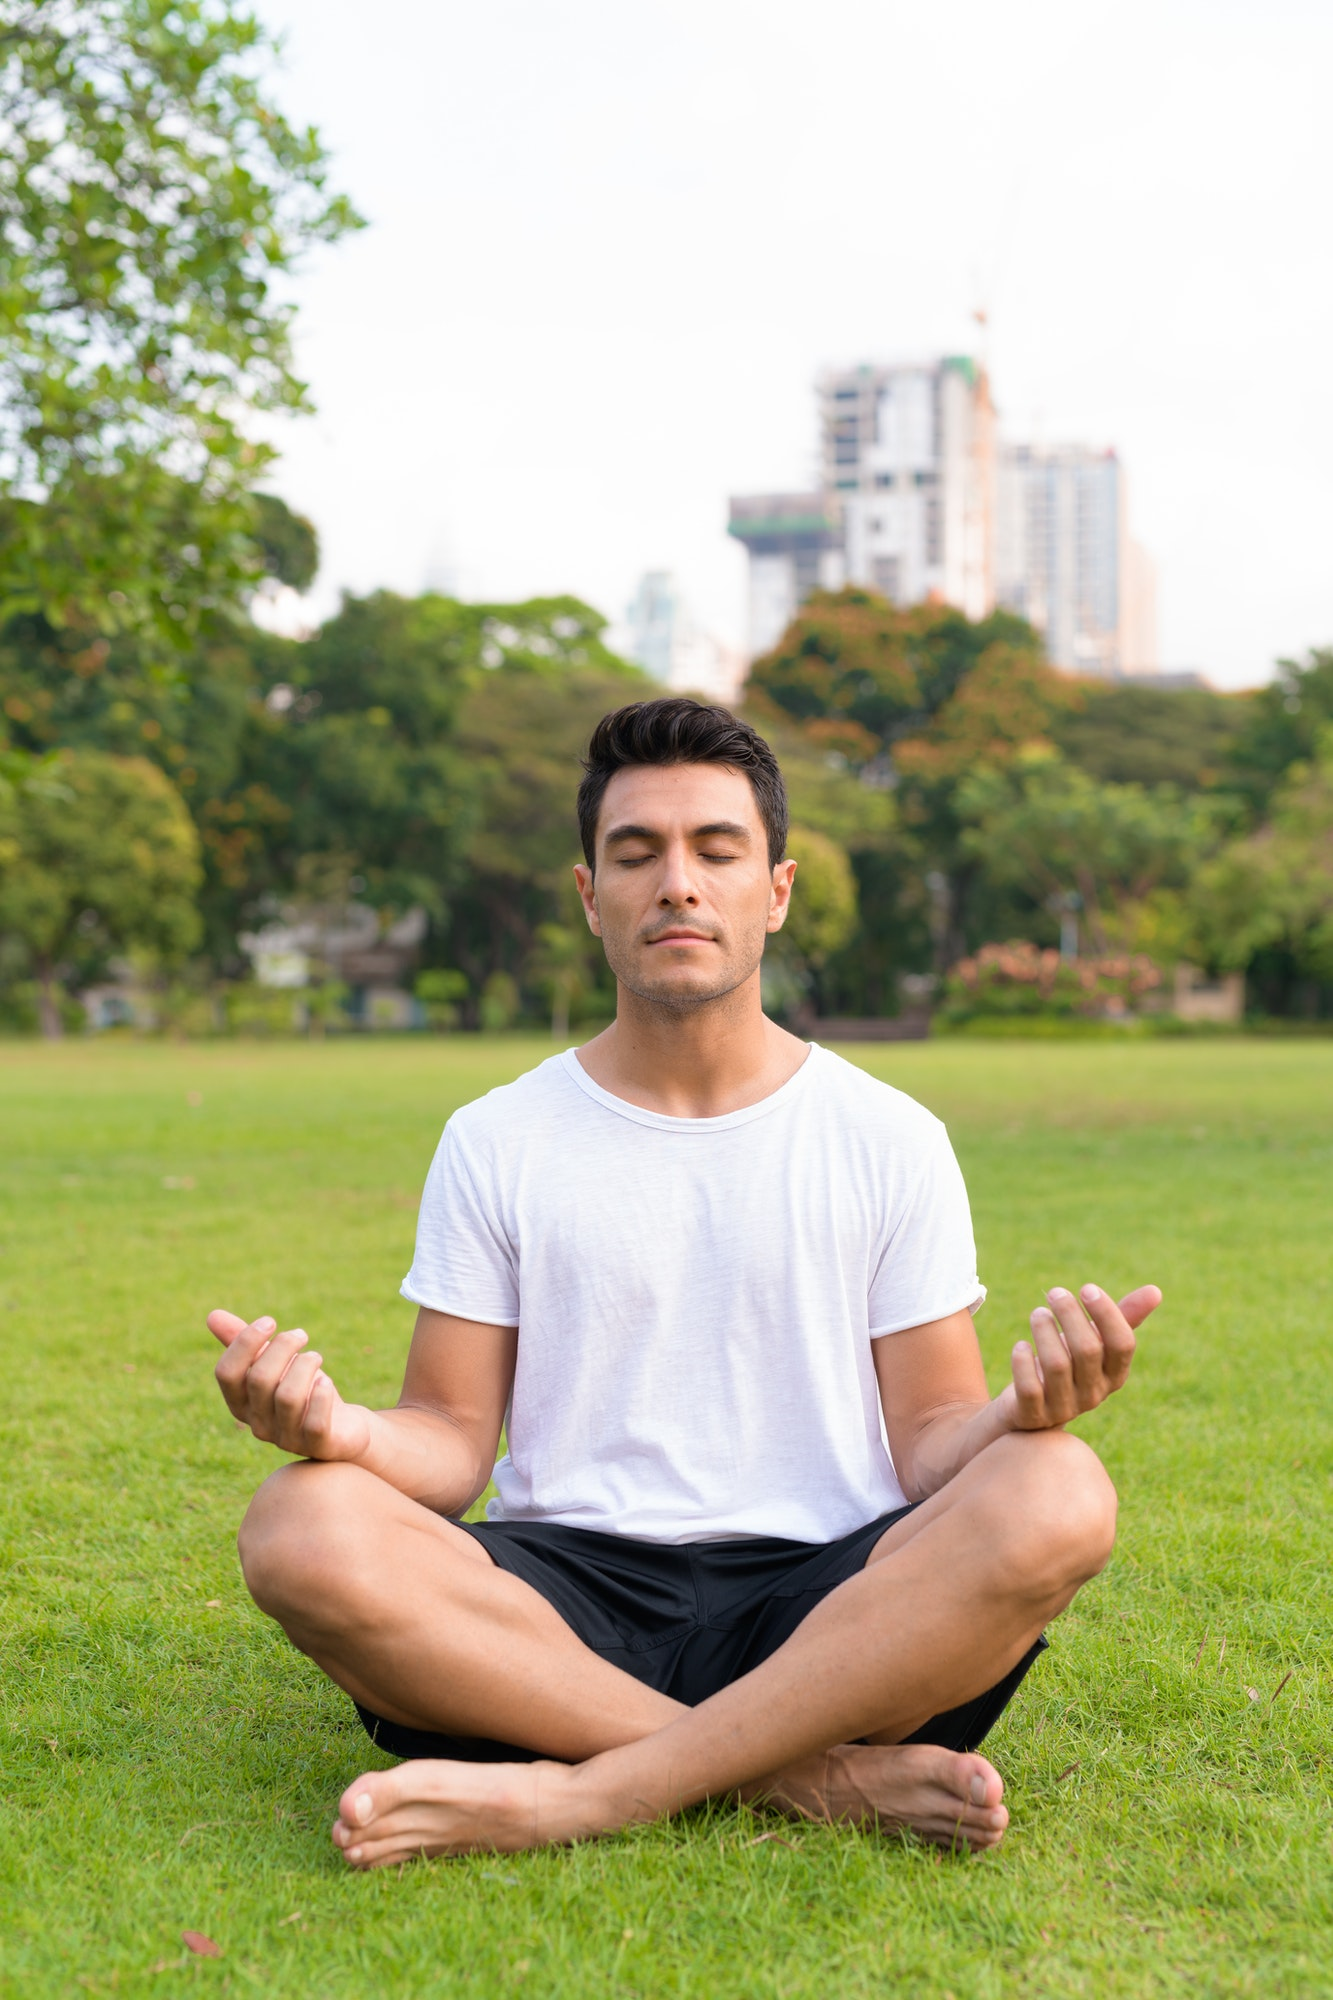 Young handsome Hispanic man meditating at the park outdoors